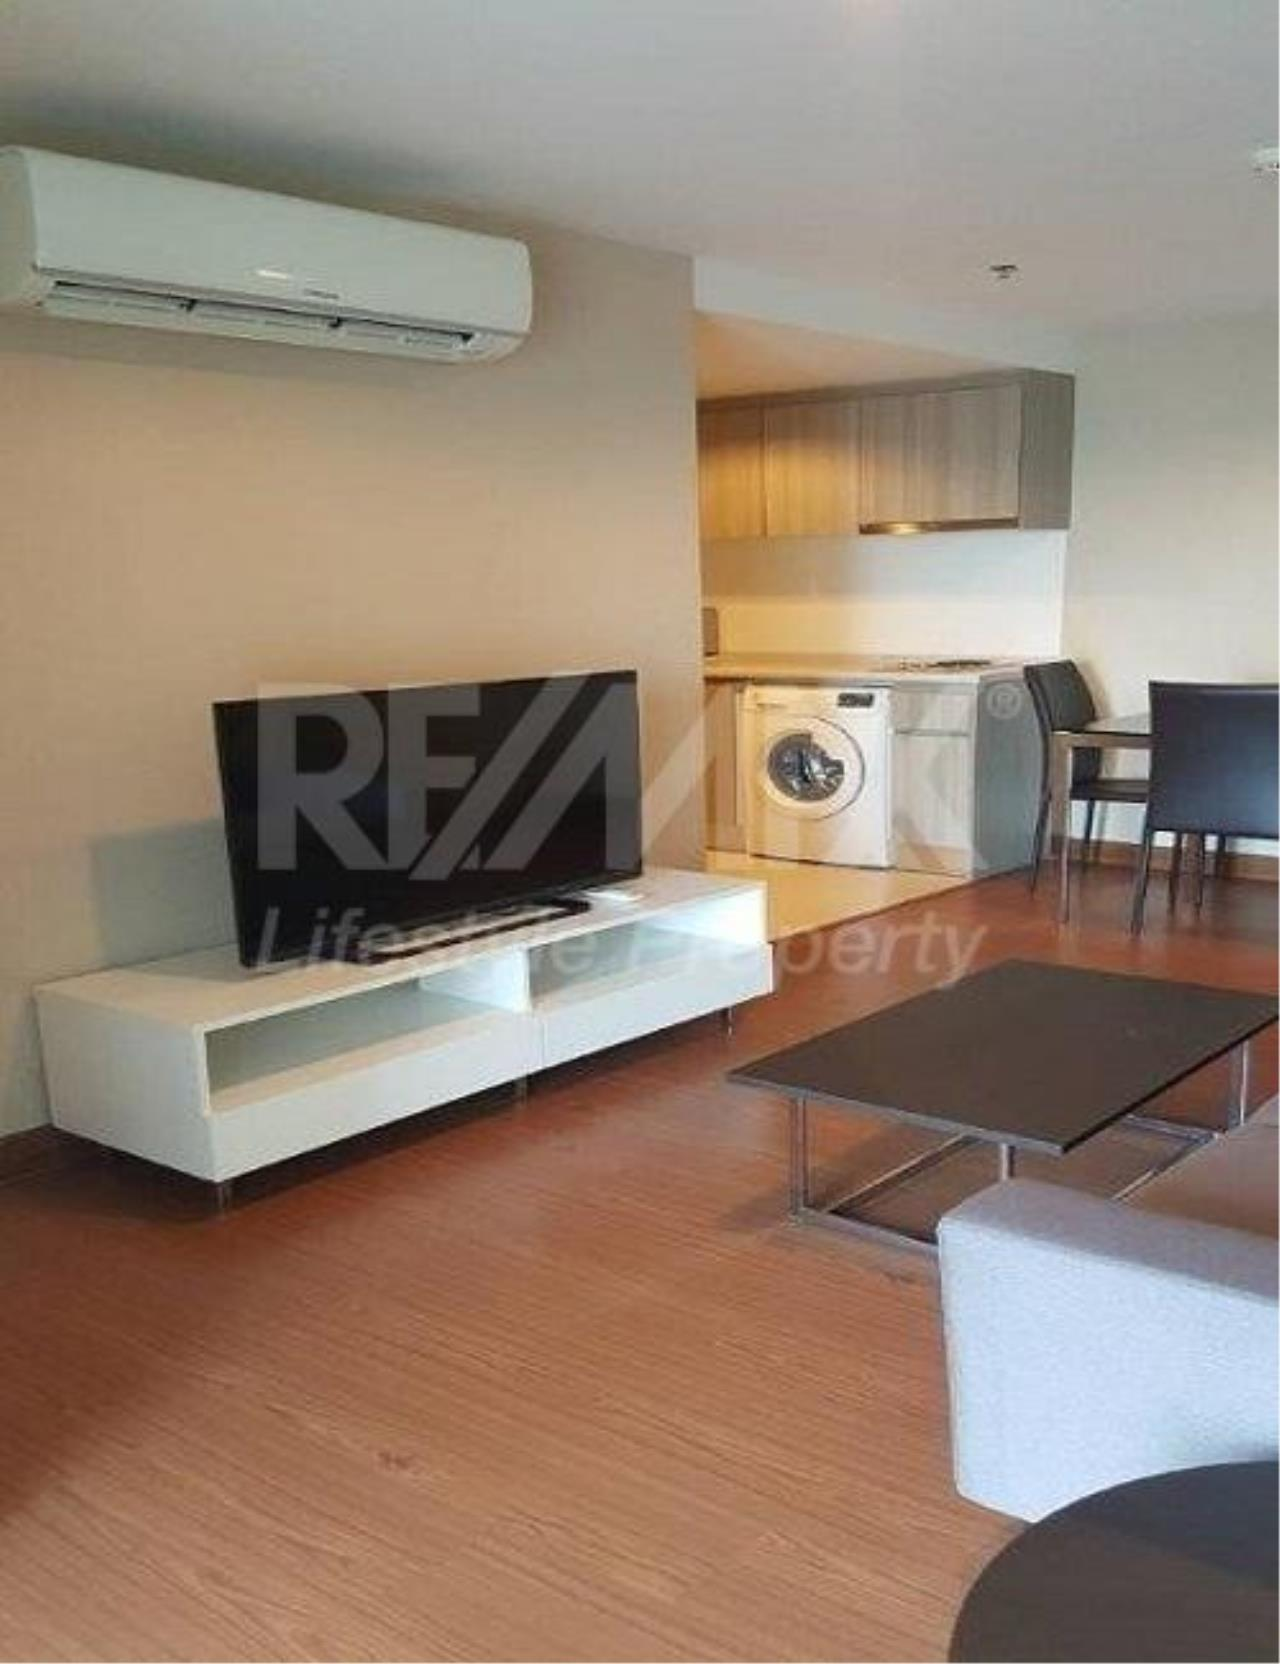 RE/MAX LifeStyle Property Agency's Belle Avenue Ratchada-Rama 9 1